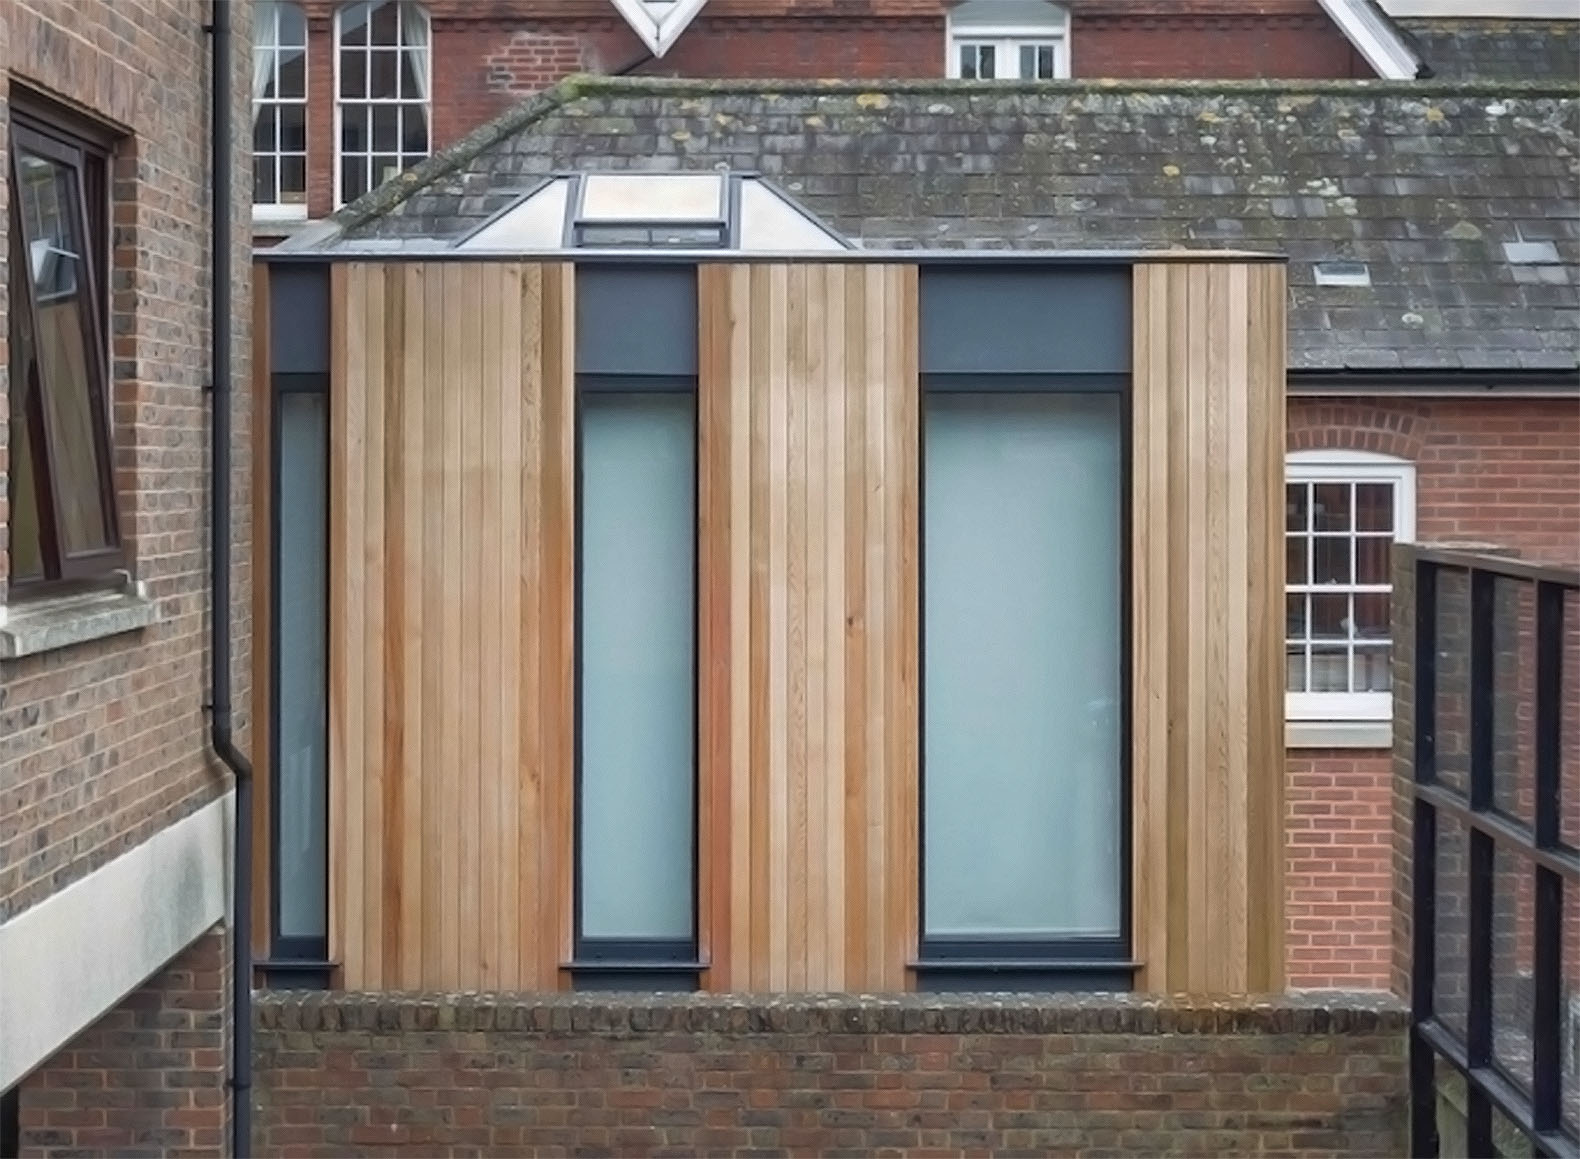 The Austen House is a tiny timber-clad home suspended between two